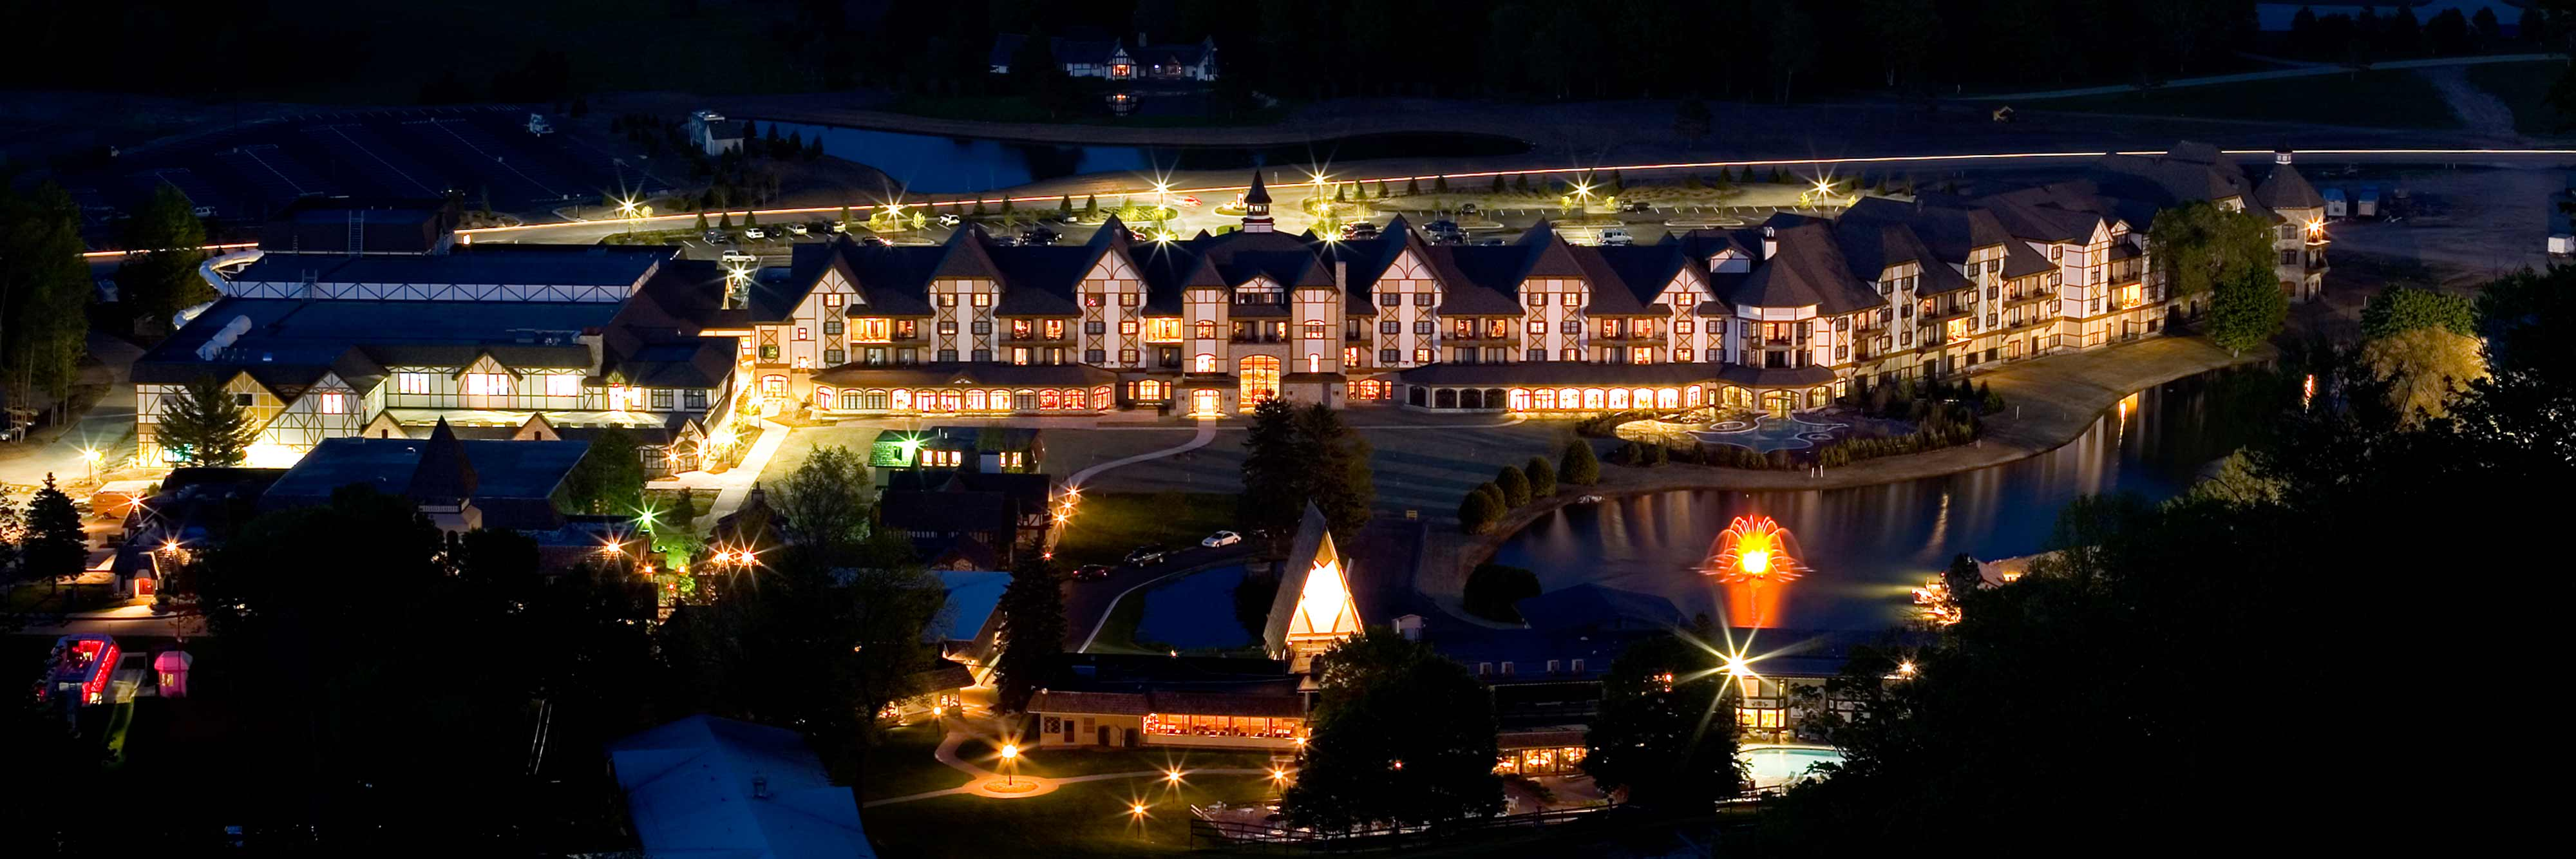 Boyne Mountain Resort, Boyne Falls